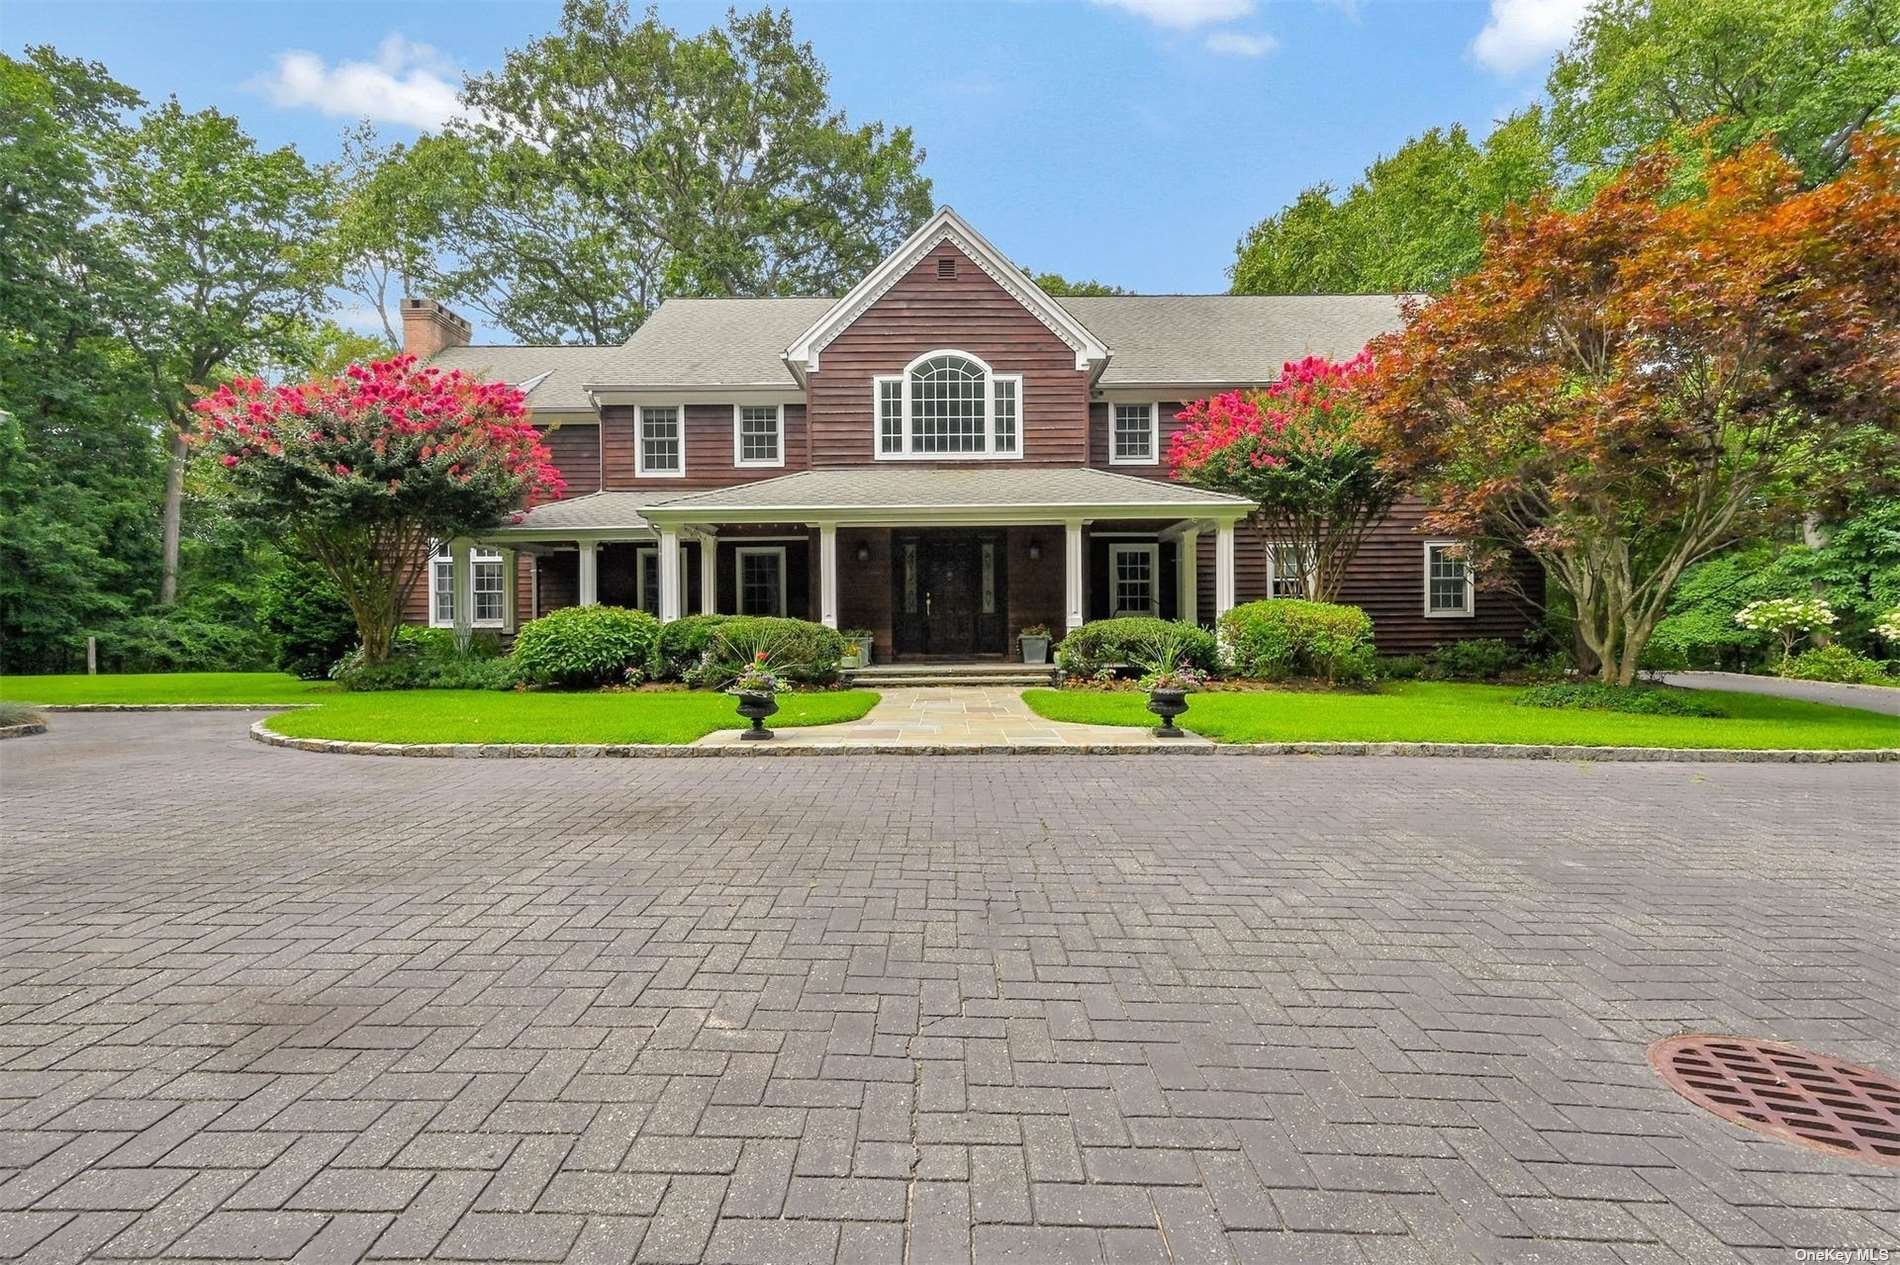 Looking for the perfect home on the North Shore's Gold Coast with peaceful surroundings, yet 10 minutes to thriving Huntington Village?  Welcome to 29 Fiddlers Green.  This 2 acre estate borders Caumsett State Park's Hiking Trails and is down the block from the Fiddlers Green Private Association Beach with dock and mooring rights on the Long Island Sound.  This Cedar shake Hamptons-Style home was built in 2000 and boasts a front covered porch and features all of the amenities needed for today's lifestyle. Sunlit rooms with walls of windows, high soaring ceilings and custom millwork are just some of the amazing features of this residence.  The open floor plan, chefs kitchen open to den and large principal rooms make this a fabulous home for entertaining.  The finished walk out lower level with wine cellar and the 3 car detached garage are added bonuses to this home.  Cold Spring Harbor SD